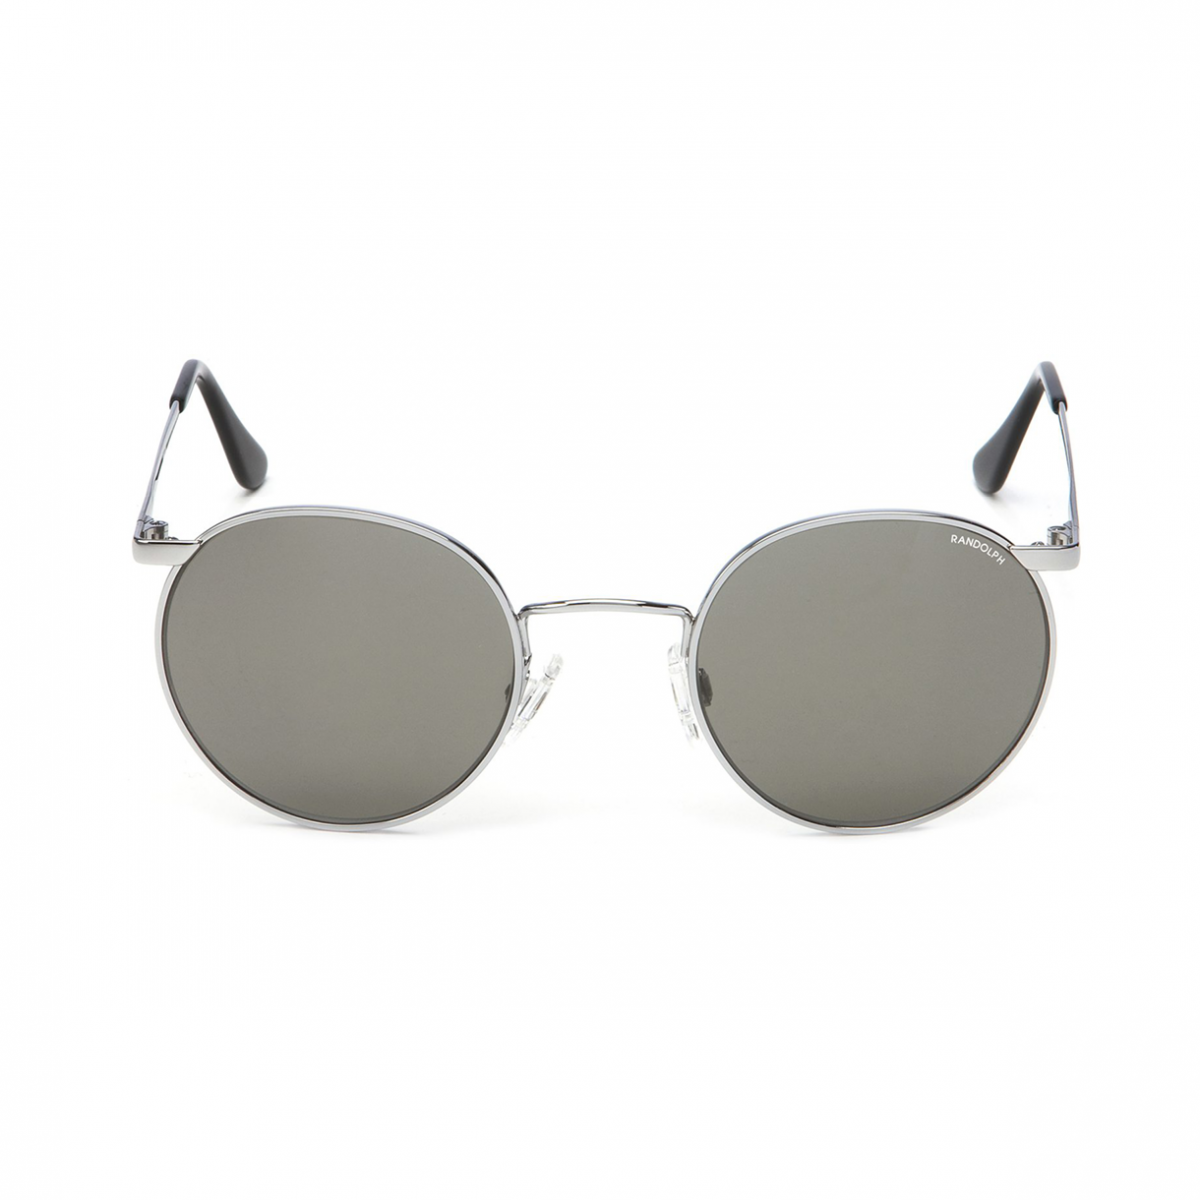 Keeweestyle Randolph Sonnenbrille Modell P3 Bright Chrome American Gray Front